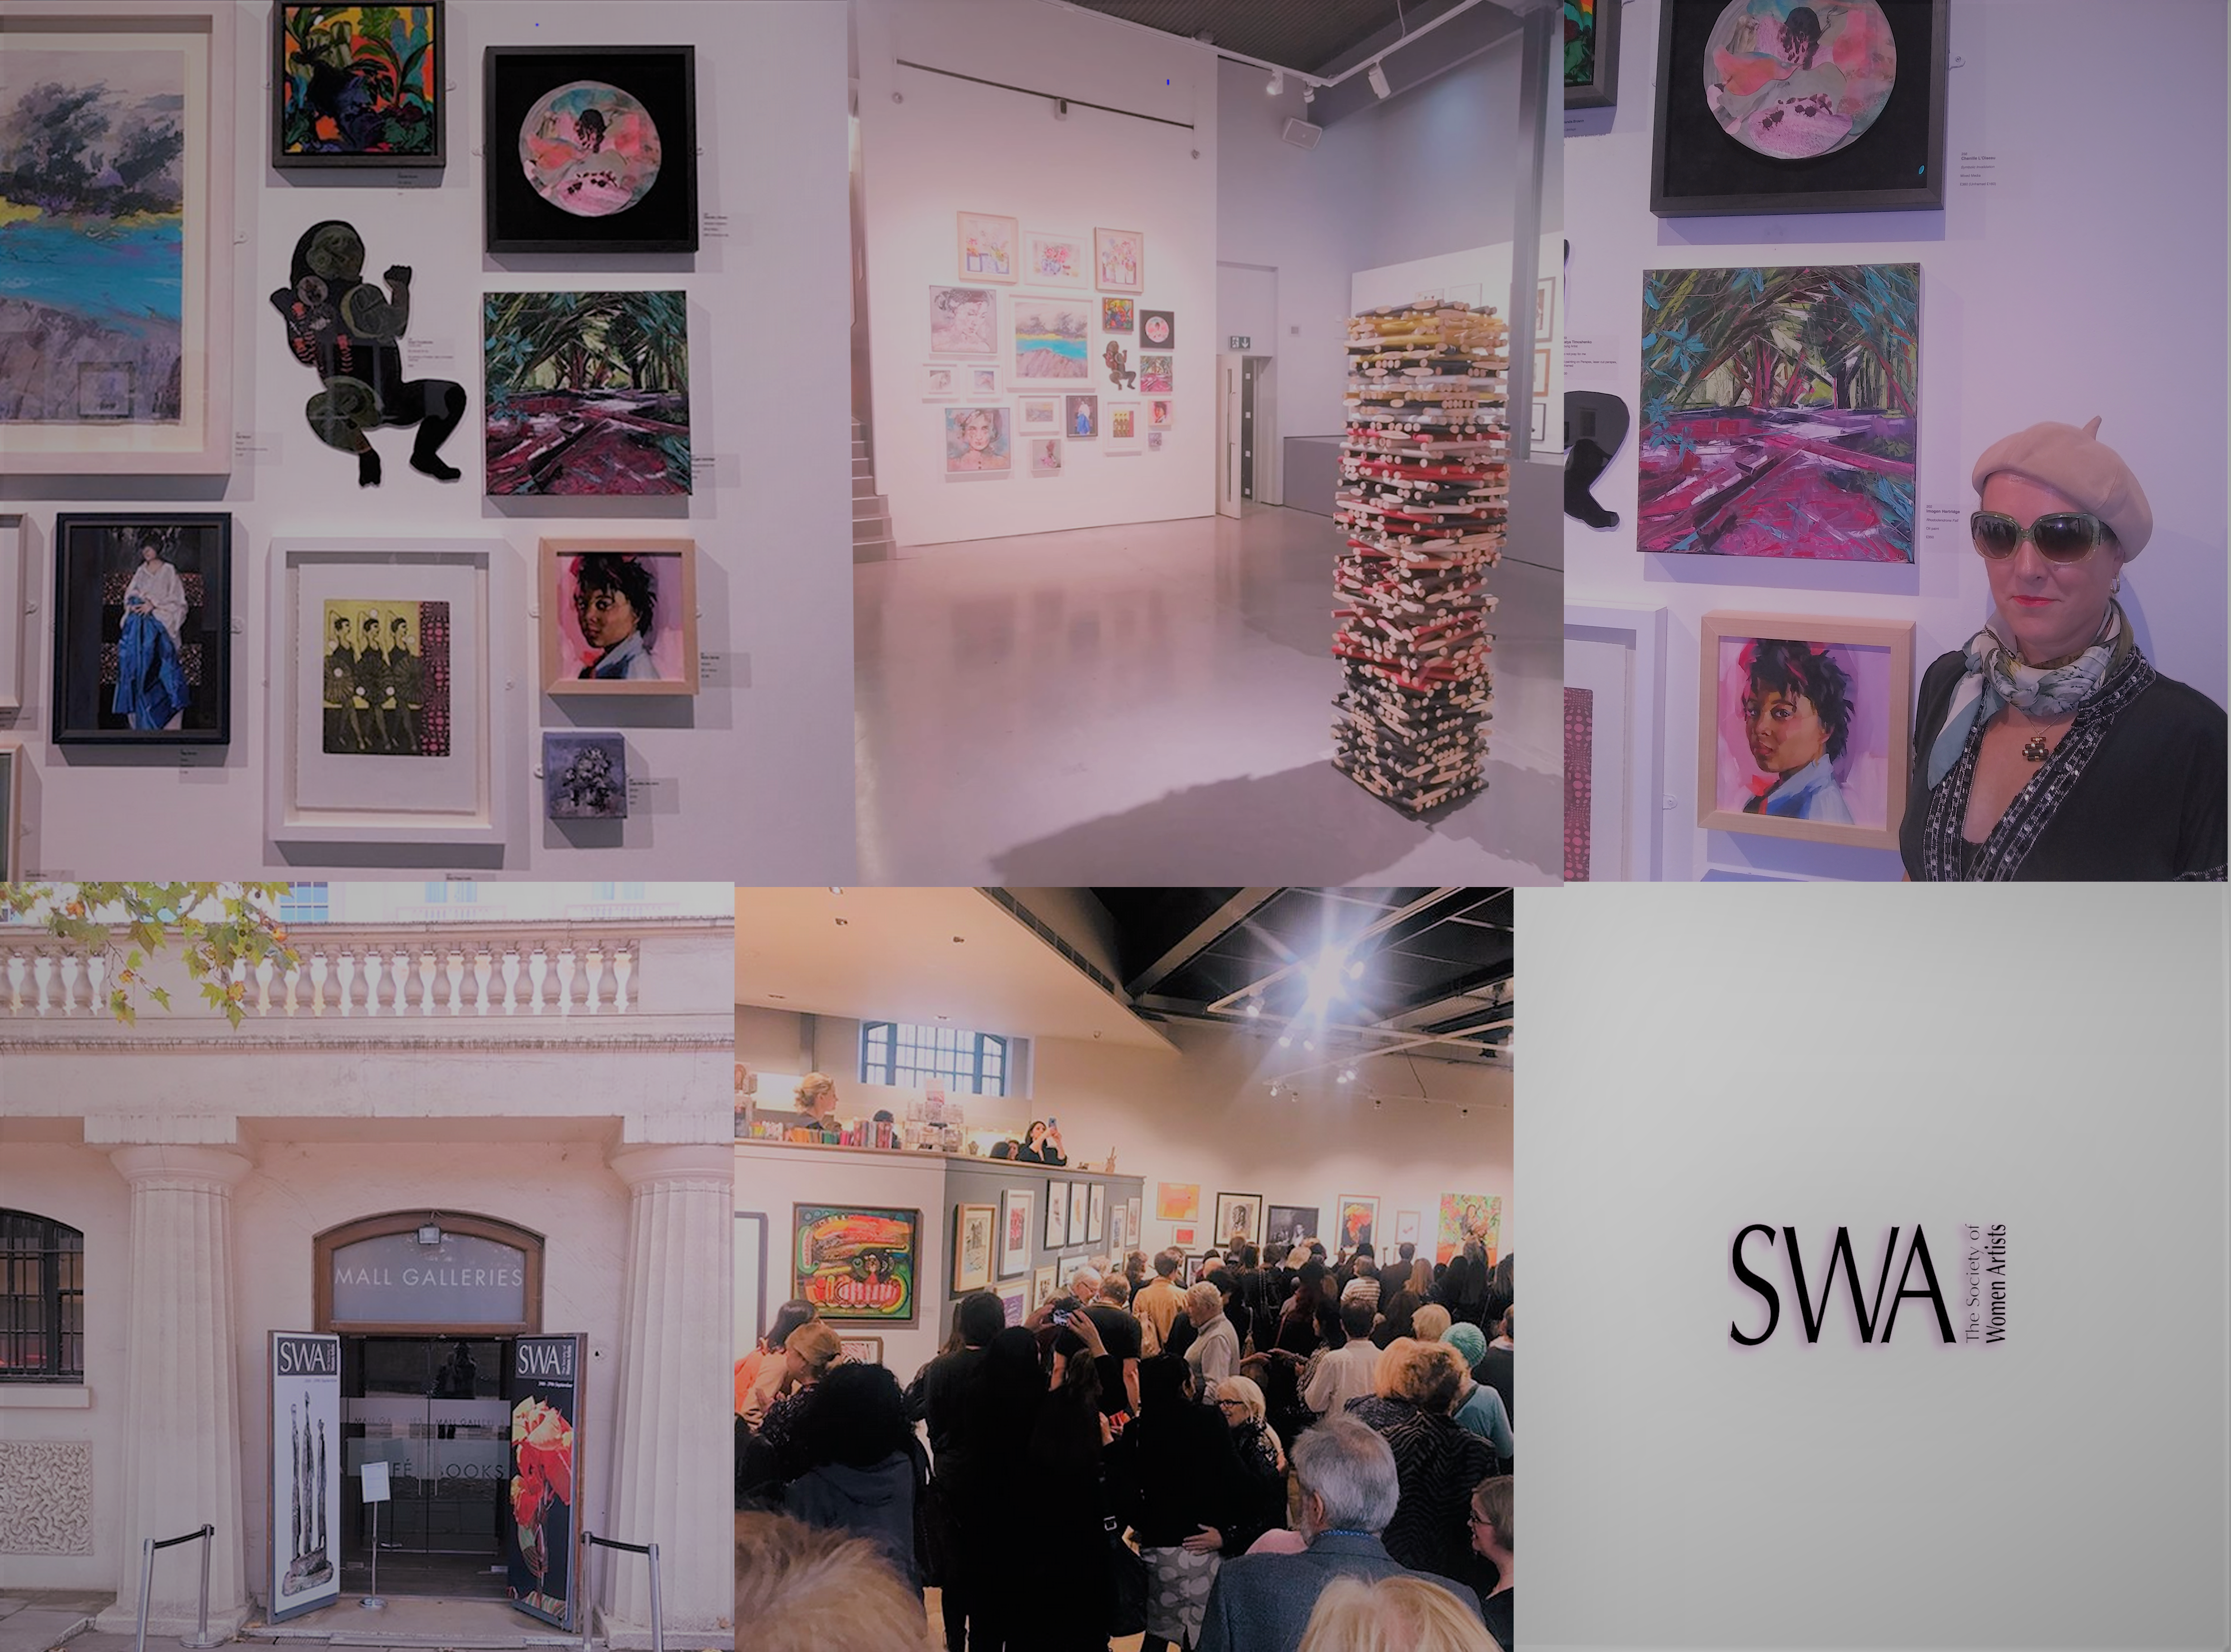 SWA 2019 @ Mall Galleries collage